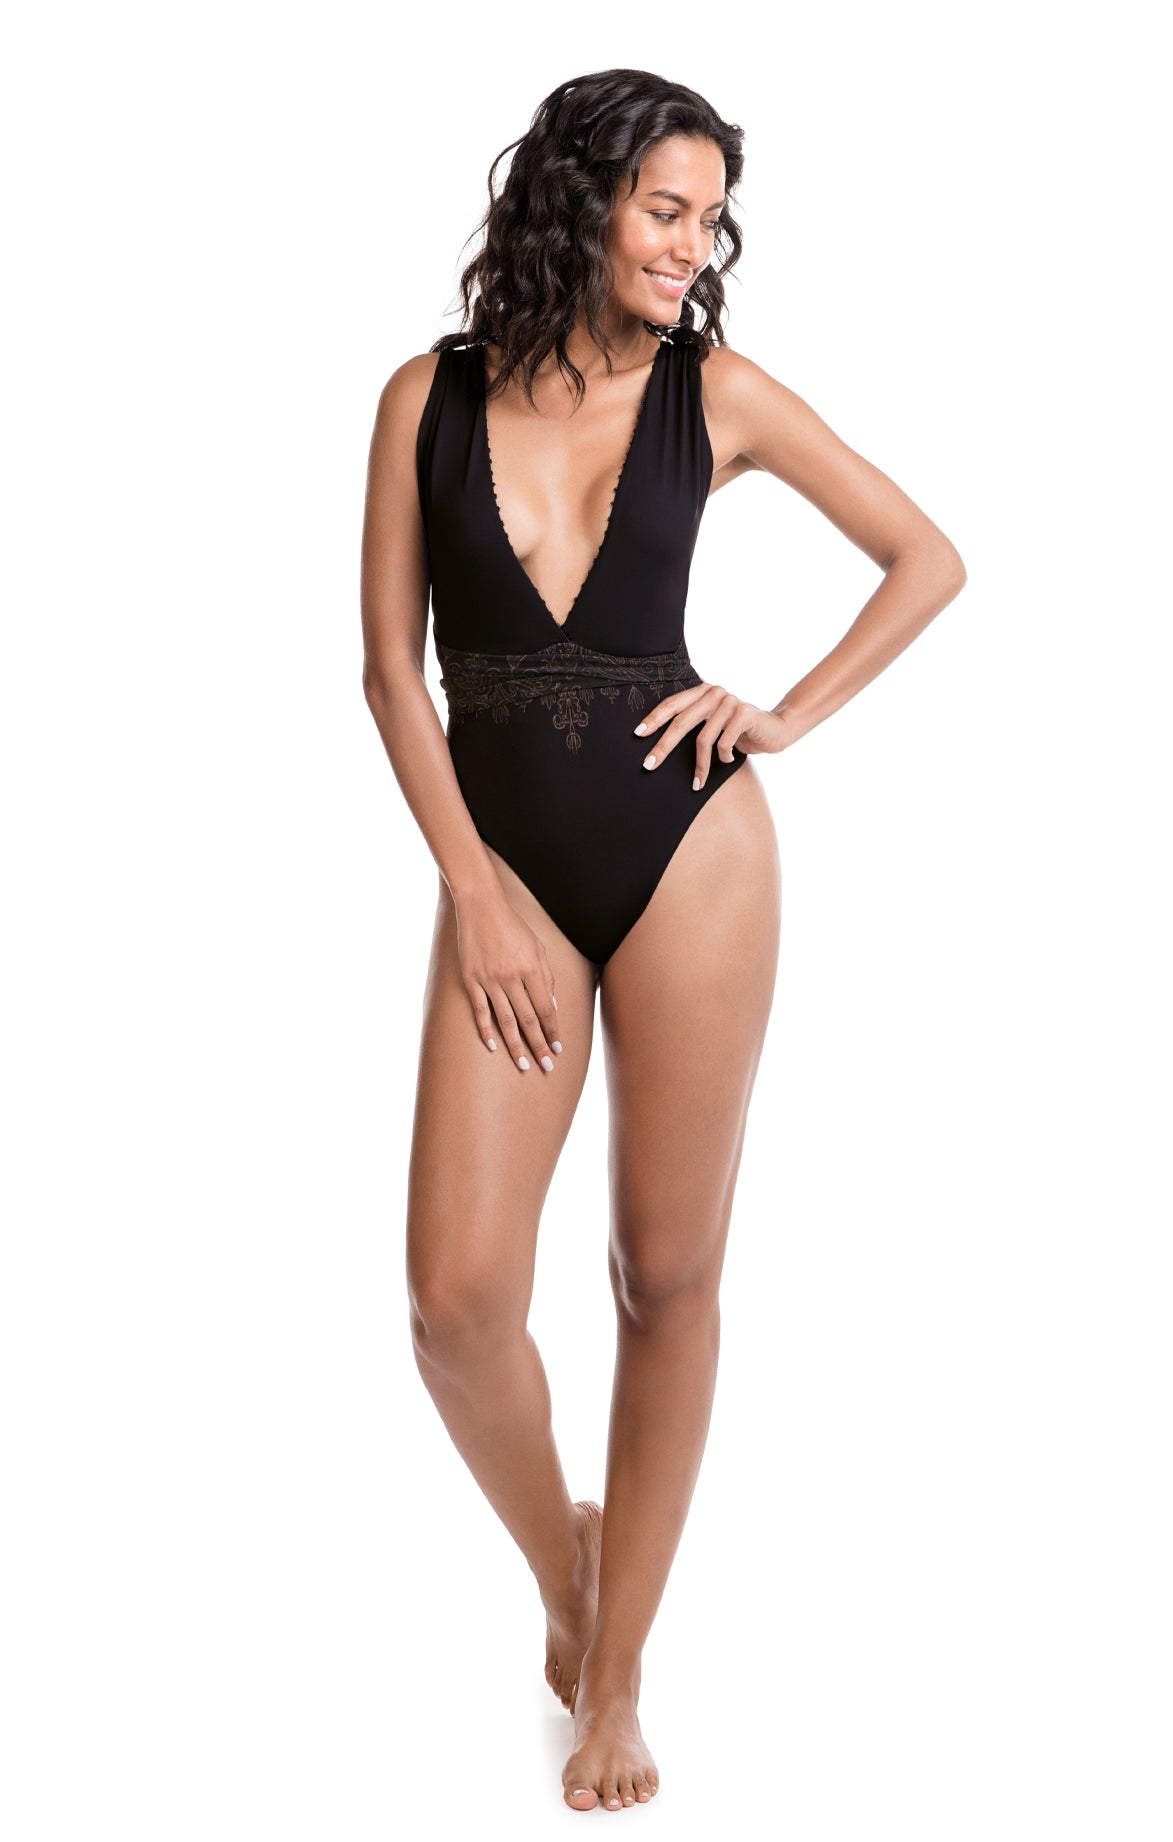 Tivoli Damasco One Piece Swimsuit